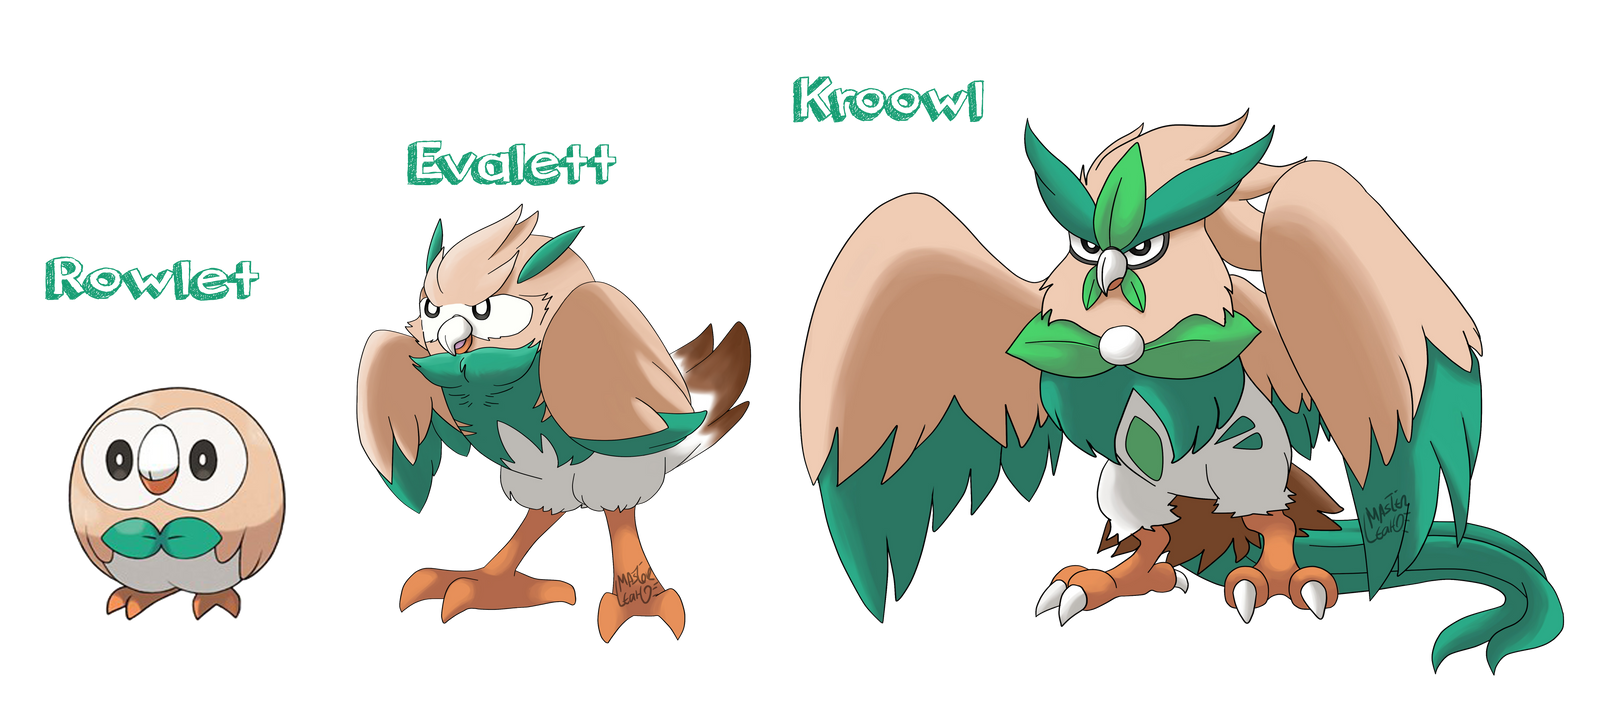 Rowlet Evolutions By Masterleahart On Deviantart